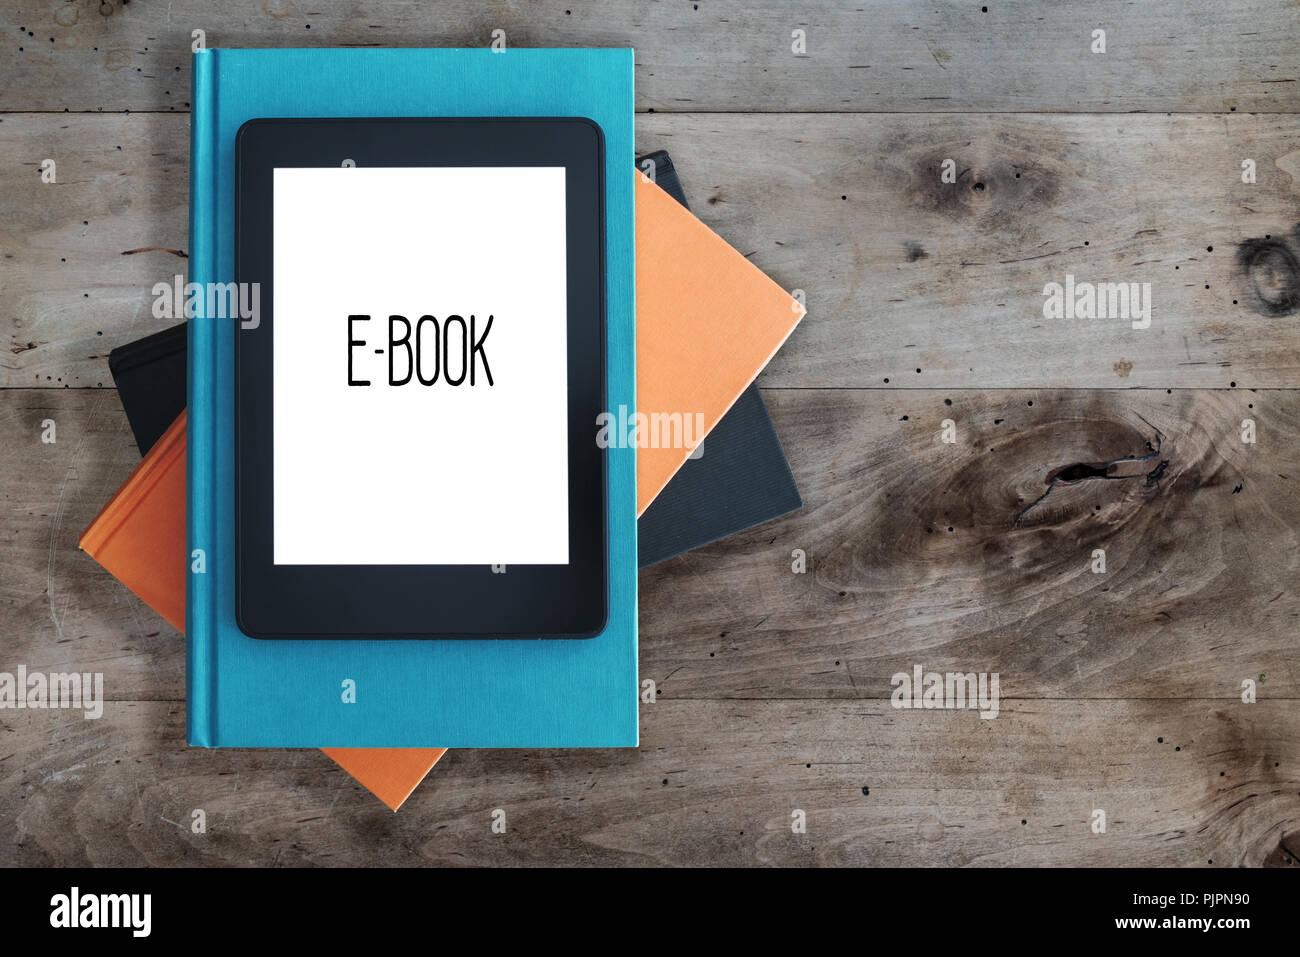 e-book reader on a stack of books on rustic wooden table concept - Stock Image